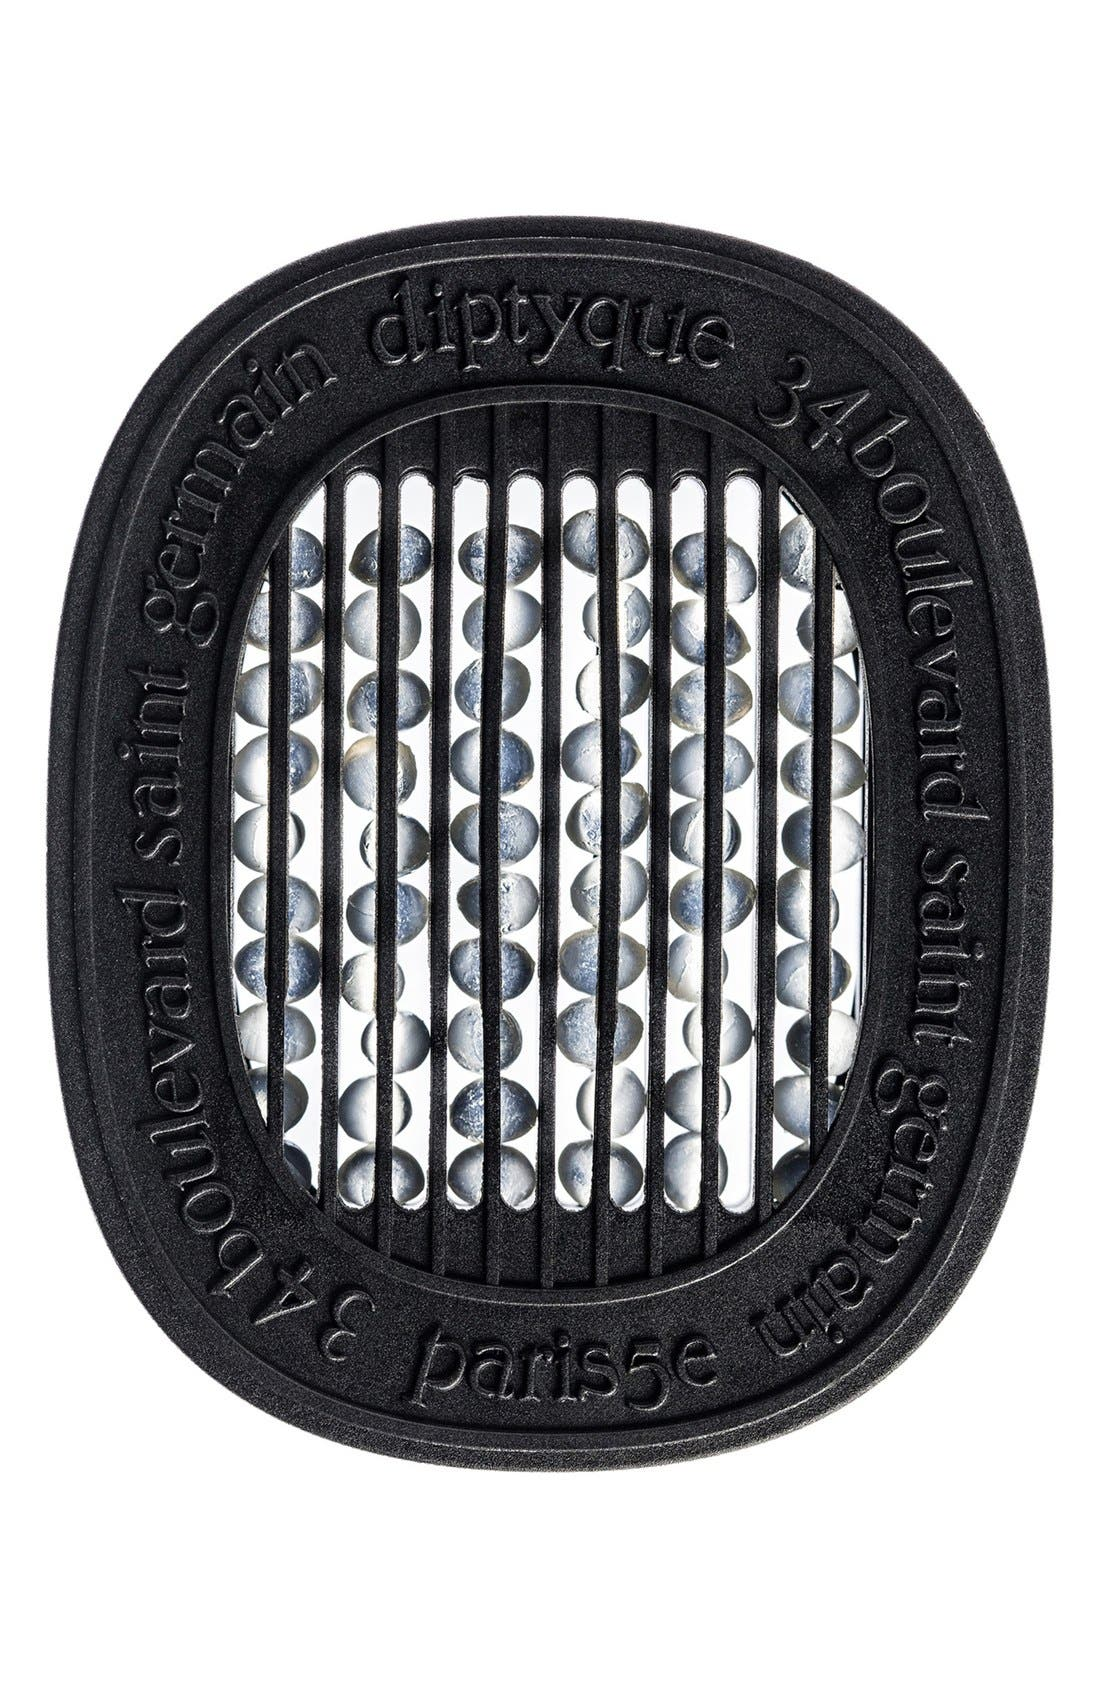 DIPTYQUE 'Ginger' Electric Diffuser Cartridge